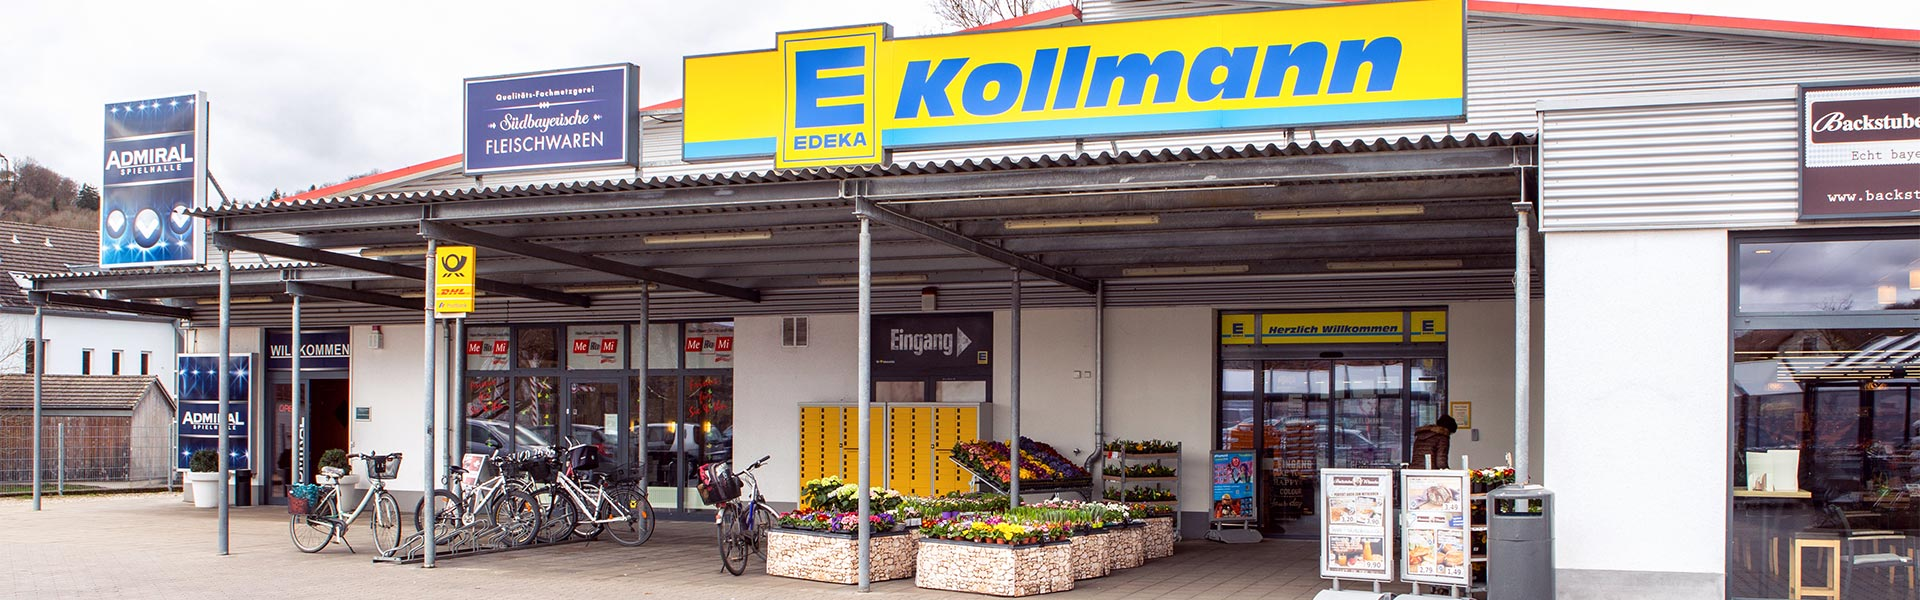 EDEKA Kollmann in Beilngries